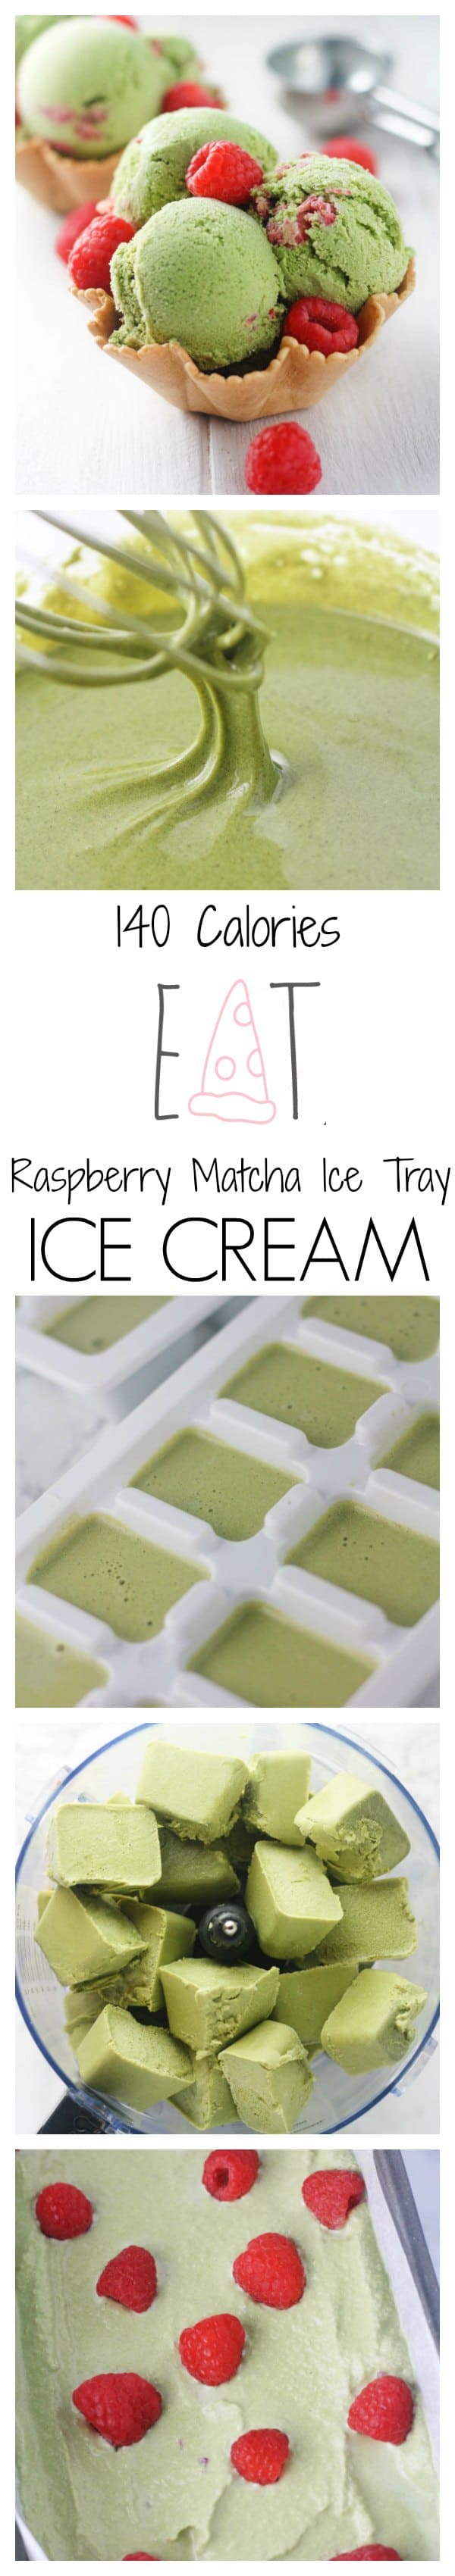 Low calorie, 4 ingredient no churn green tea ice cream that does not include heavy cream or bananas! Super creamy, delicious and guilt free.